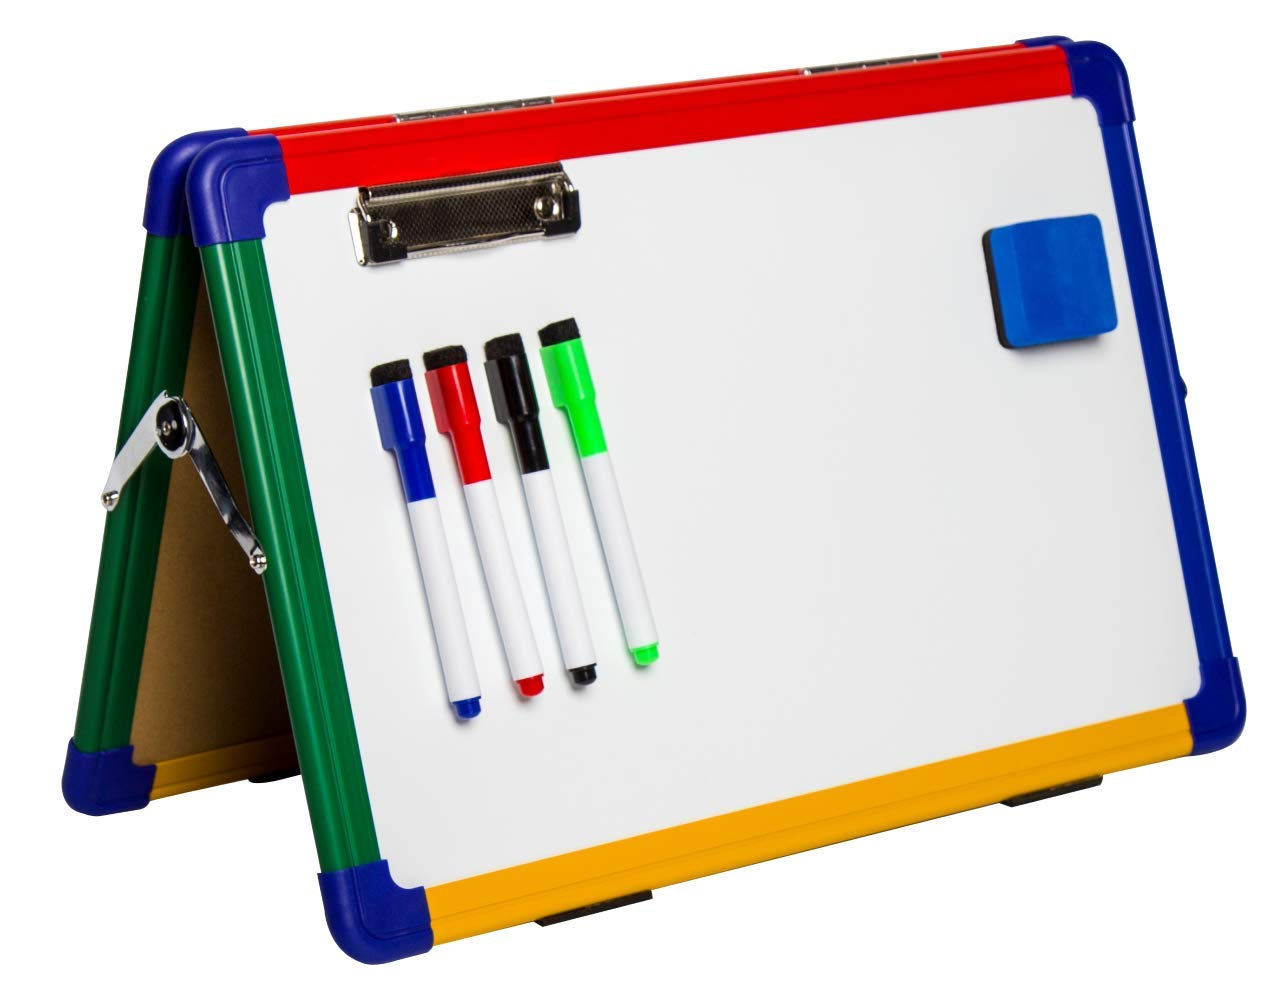 IbexStationers Magnetic Kids Dry Erase Board Whiteboard Easel for Children, Home Learning Tools, Double Sided Marker Board, with Four Color Markers and Eraser Size 12x16